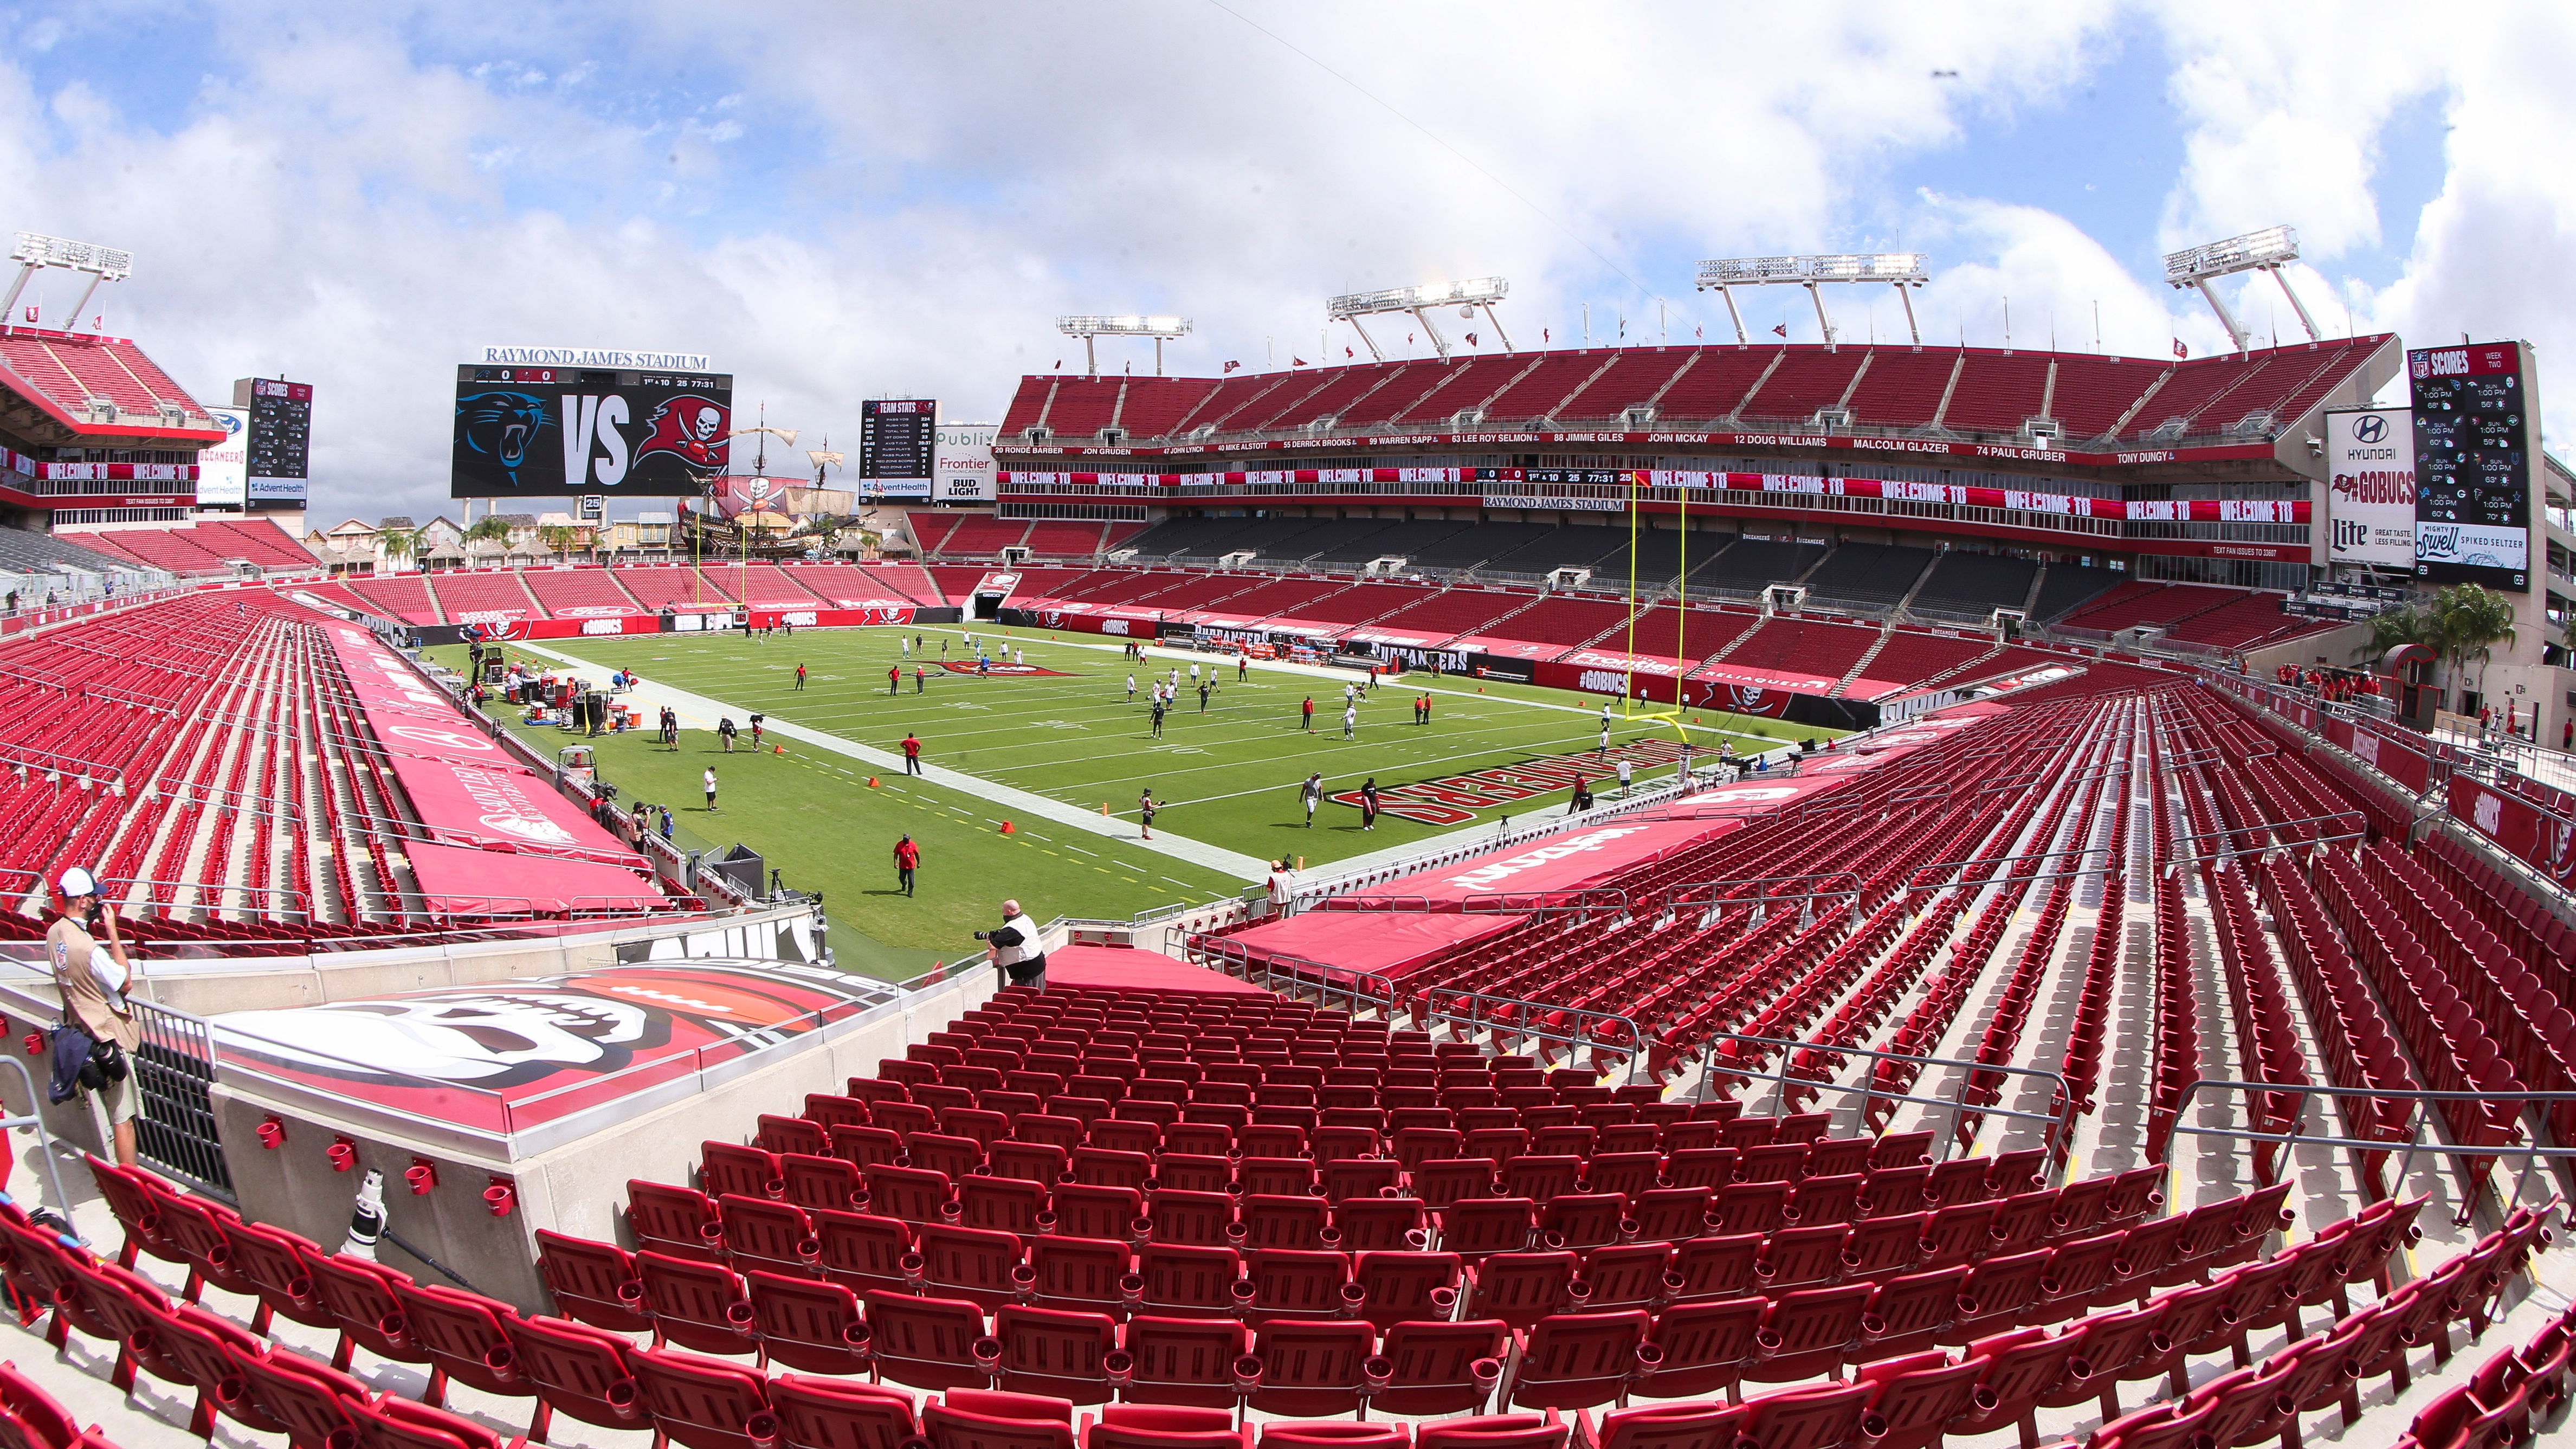 bucs will play in front of home crowd next week vs chargers crowd next week vs chargers